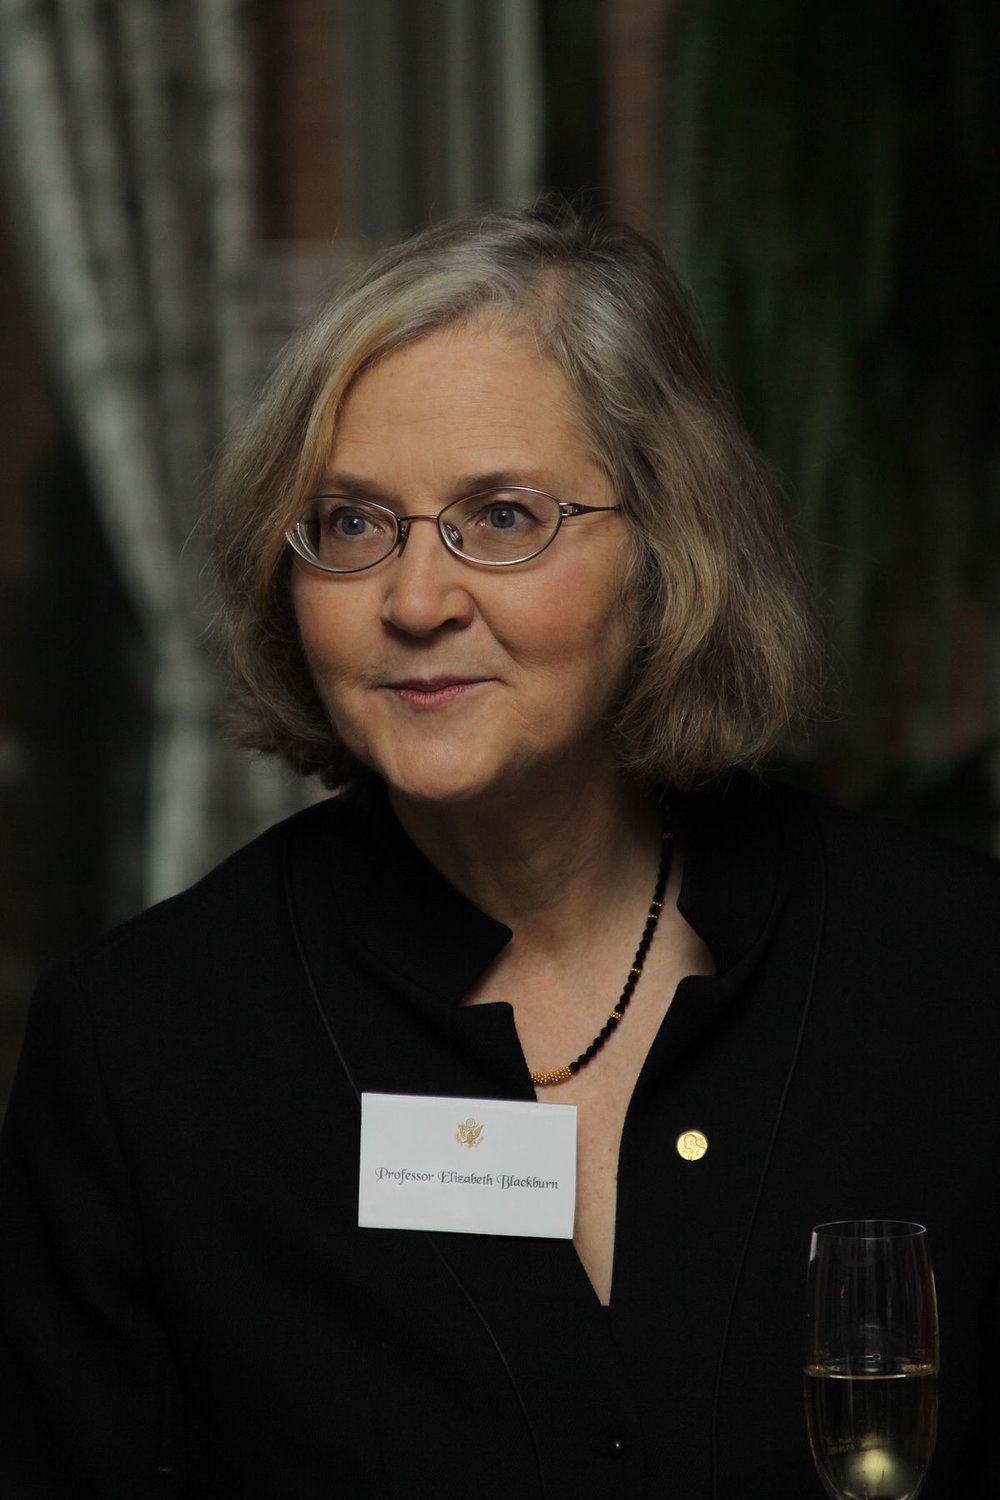 Elizabeth Blackburn - First female president of the Salk Institute, Nobel prize winner in biology